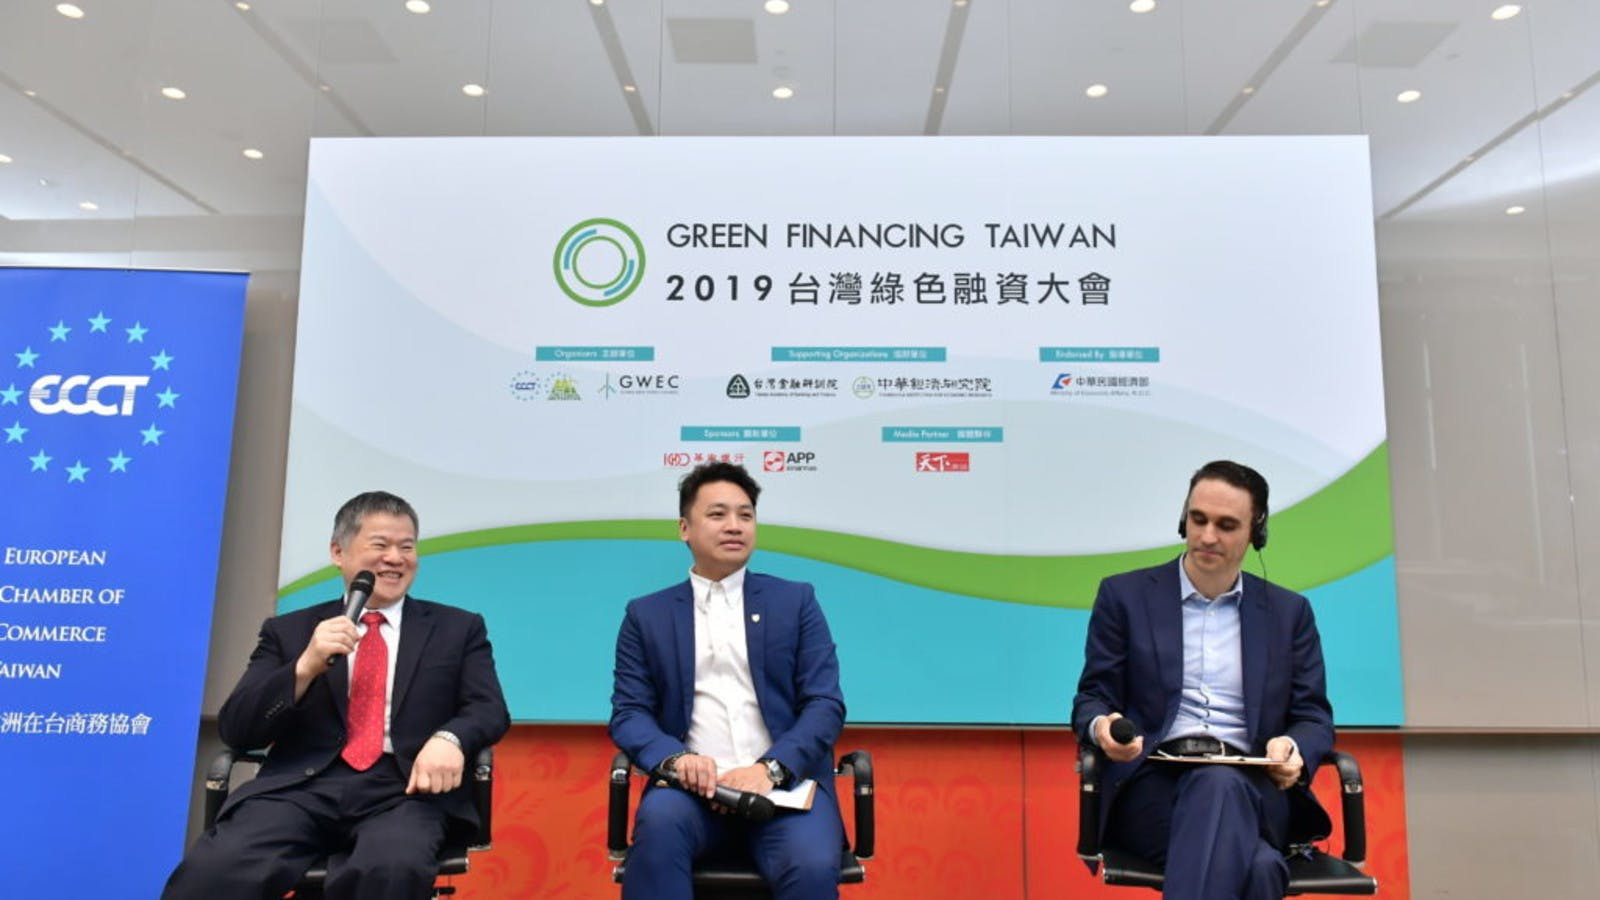 TCI's Attendance at the 2019 Green Financing Taiwan: Sharing Our Strategy for Sourcing Renewable Energy